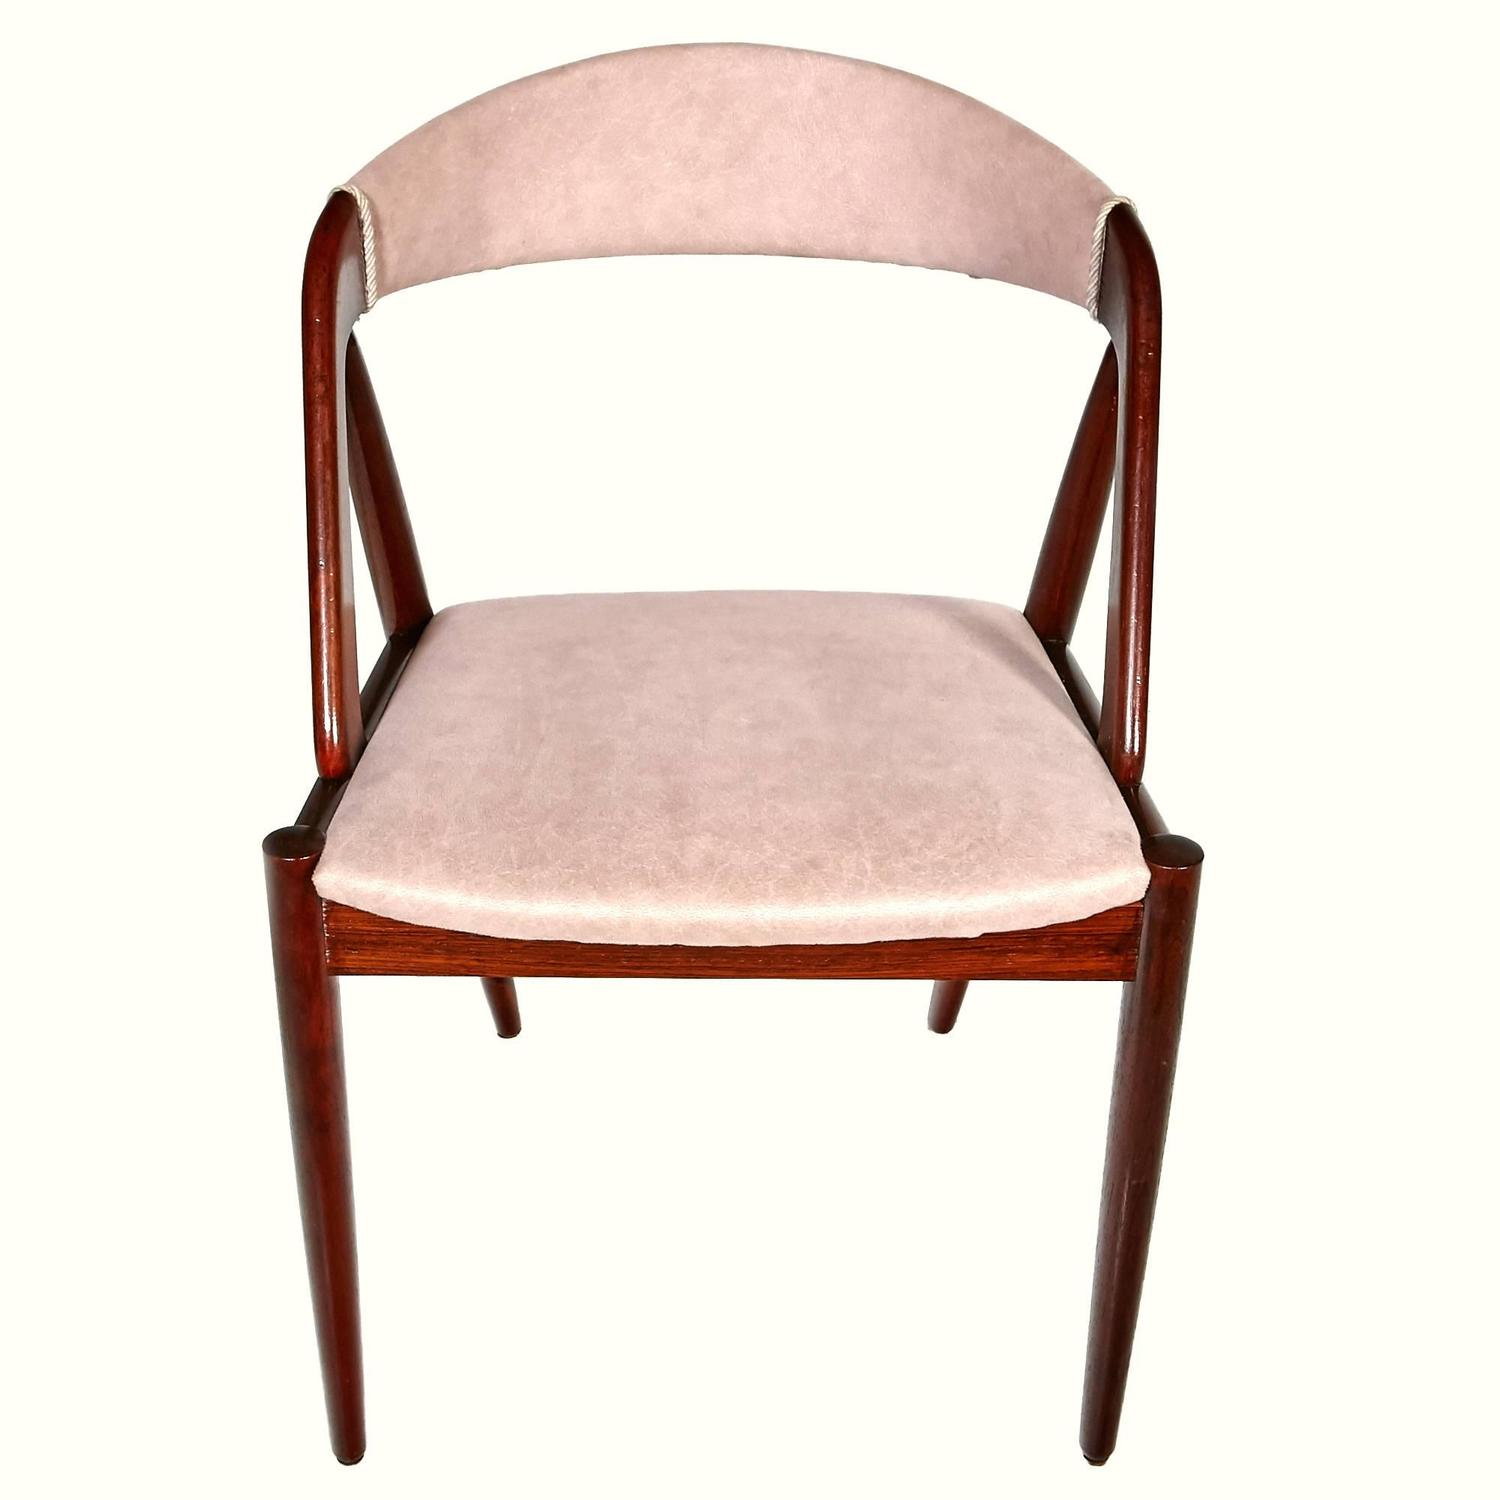 Kai kristiansen model 31 rosewood dining chairs set of six at 1stdibs - Kai kristiansen chairs ...